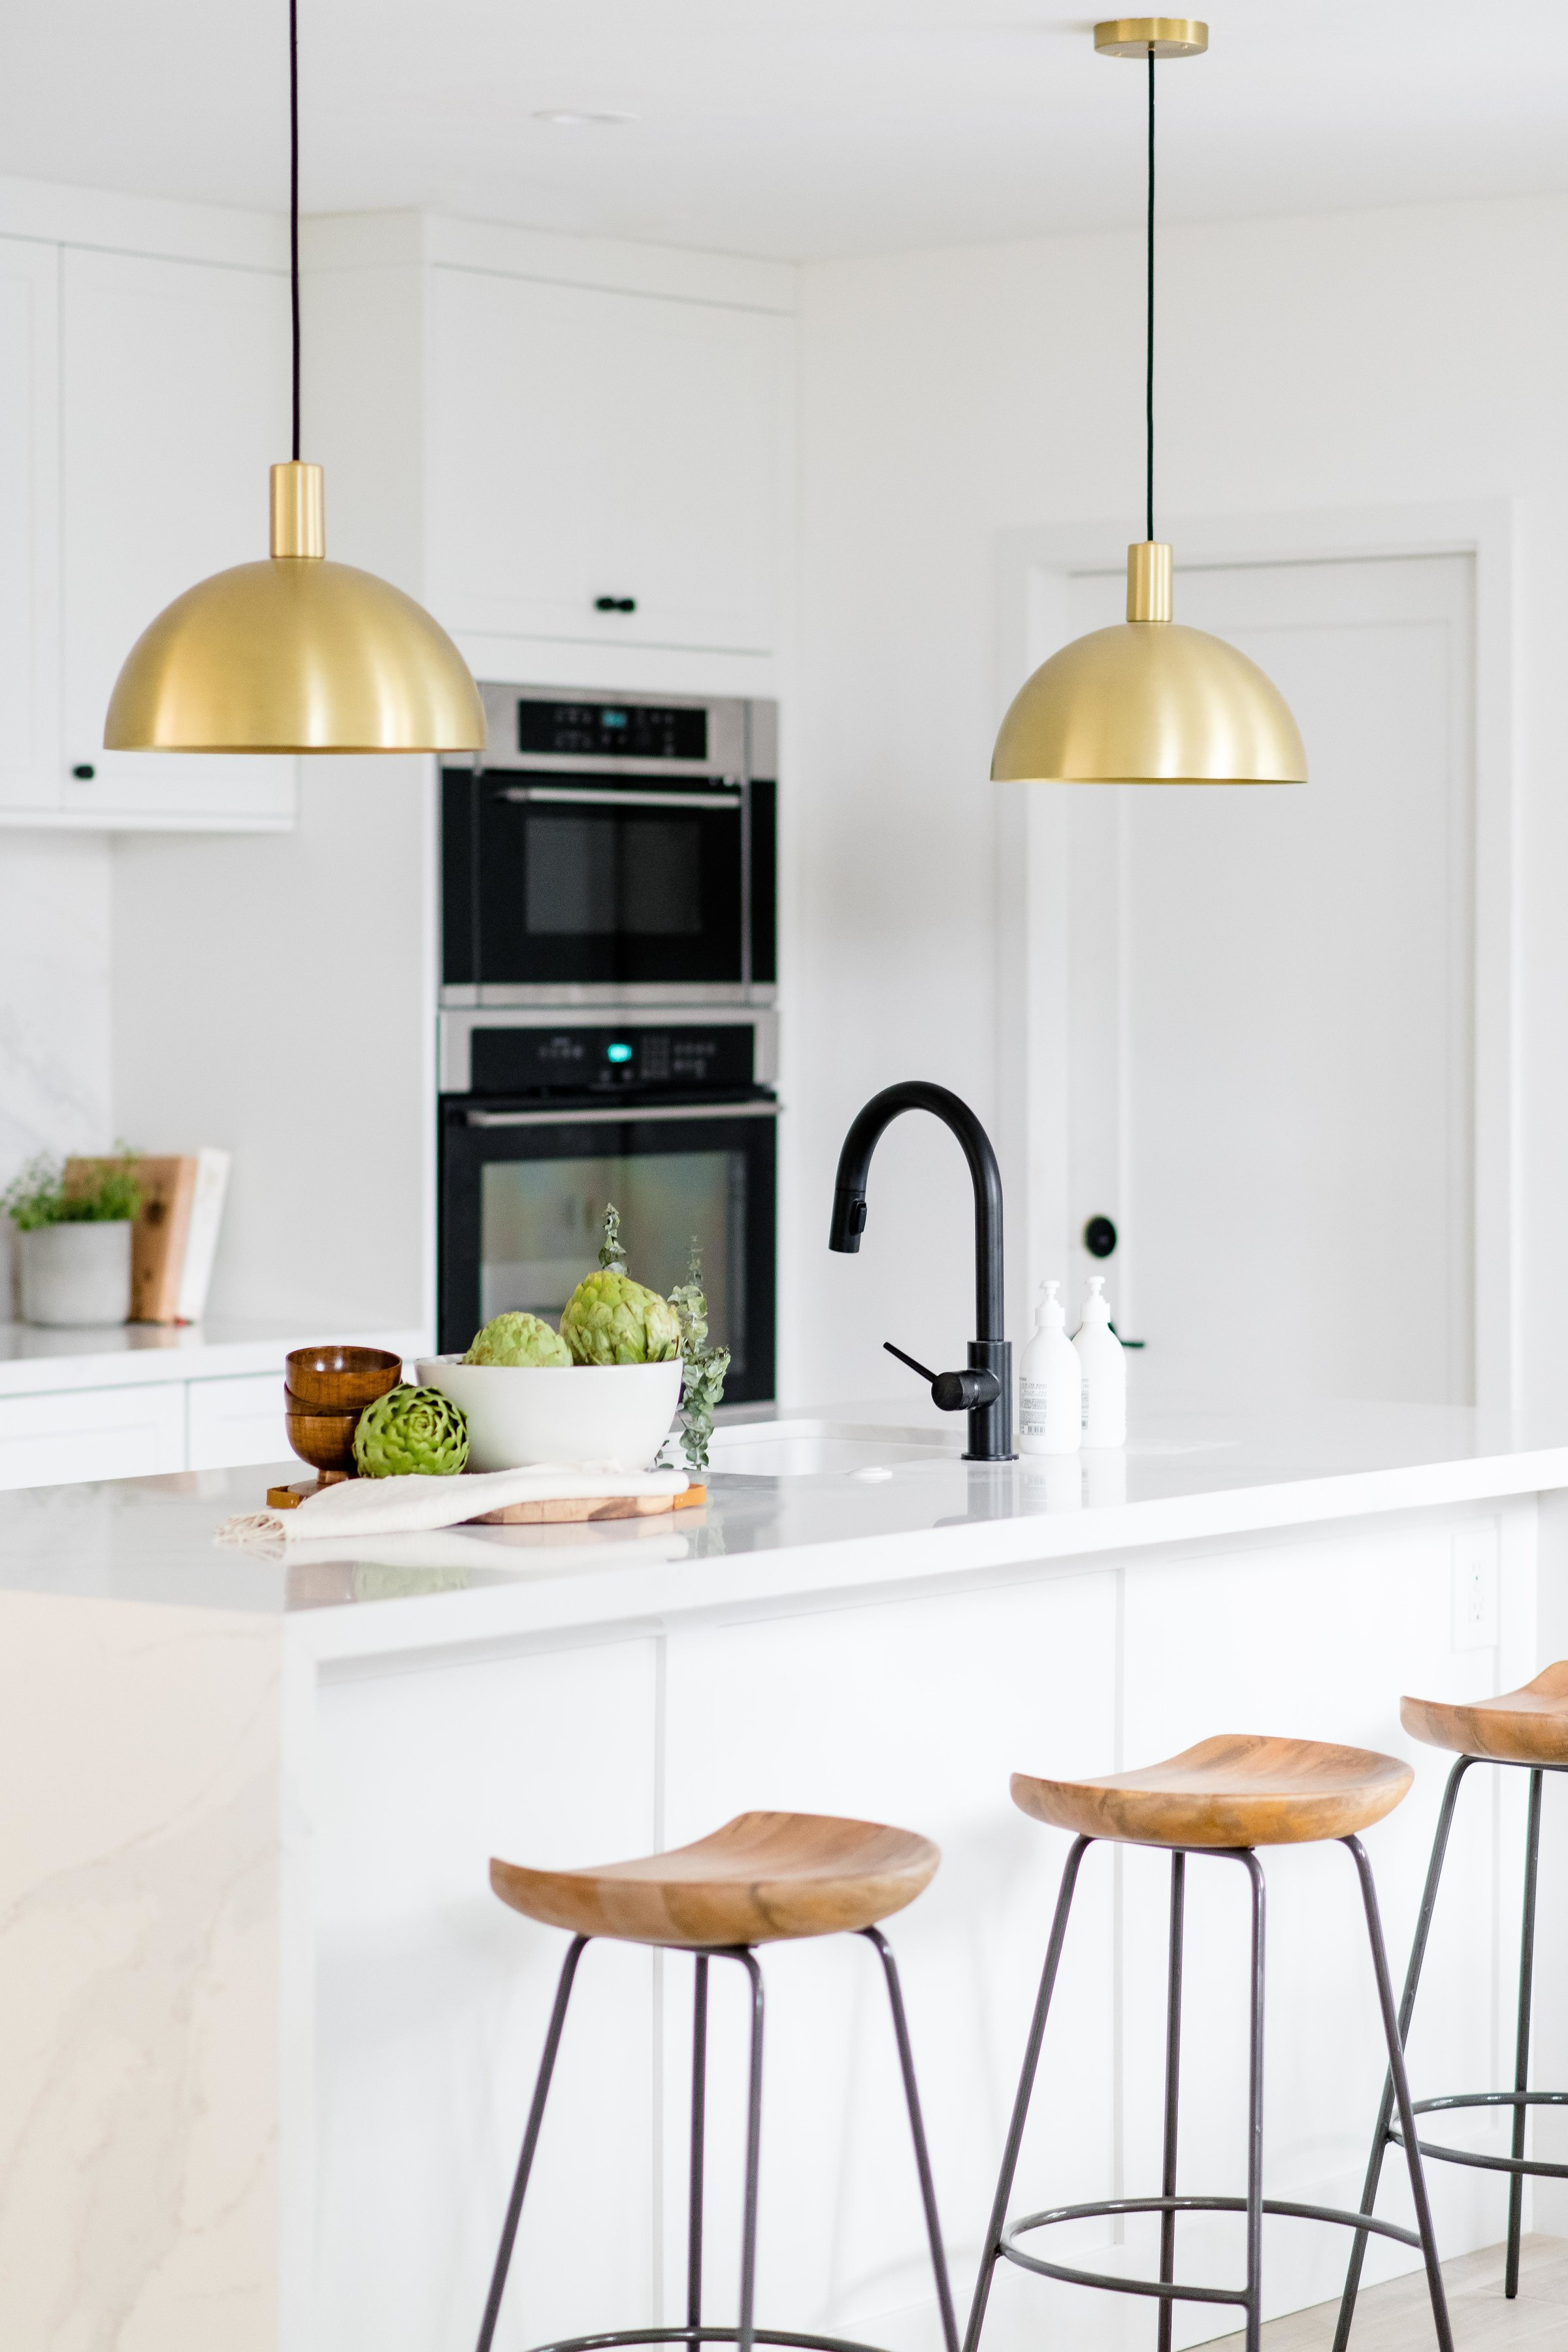 white kitchen island with barstools and brass pendants - the habitat collective interior design - #projectpeachy